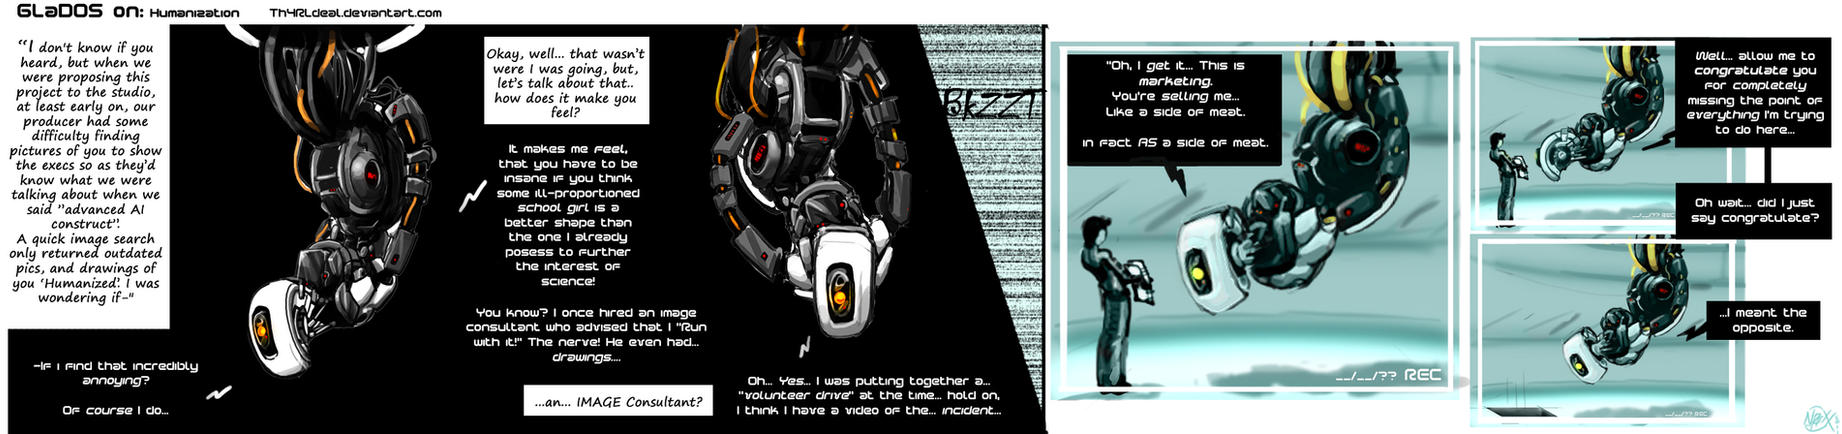 03 GLaDOS On: Humanization by Th4rlDEAL